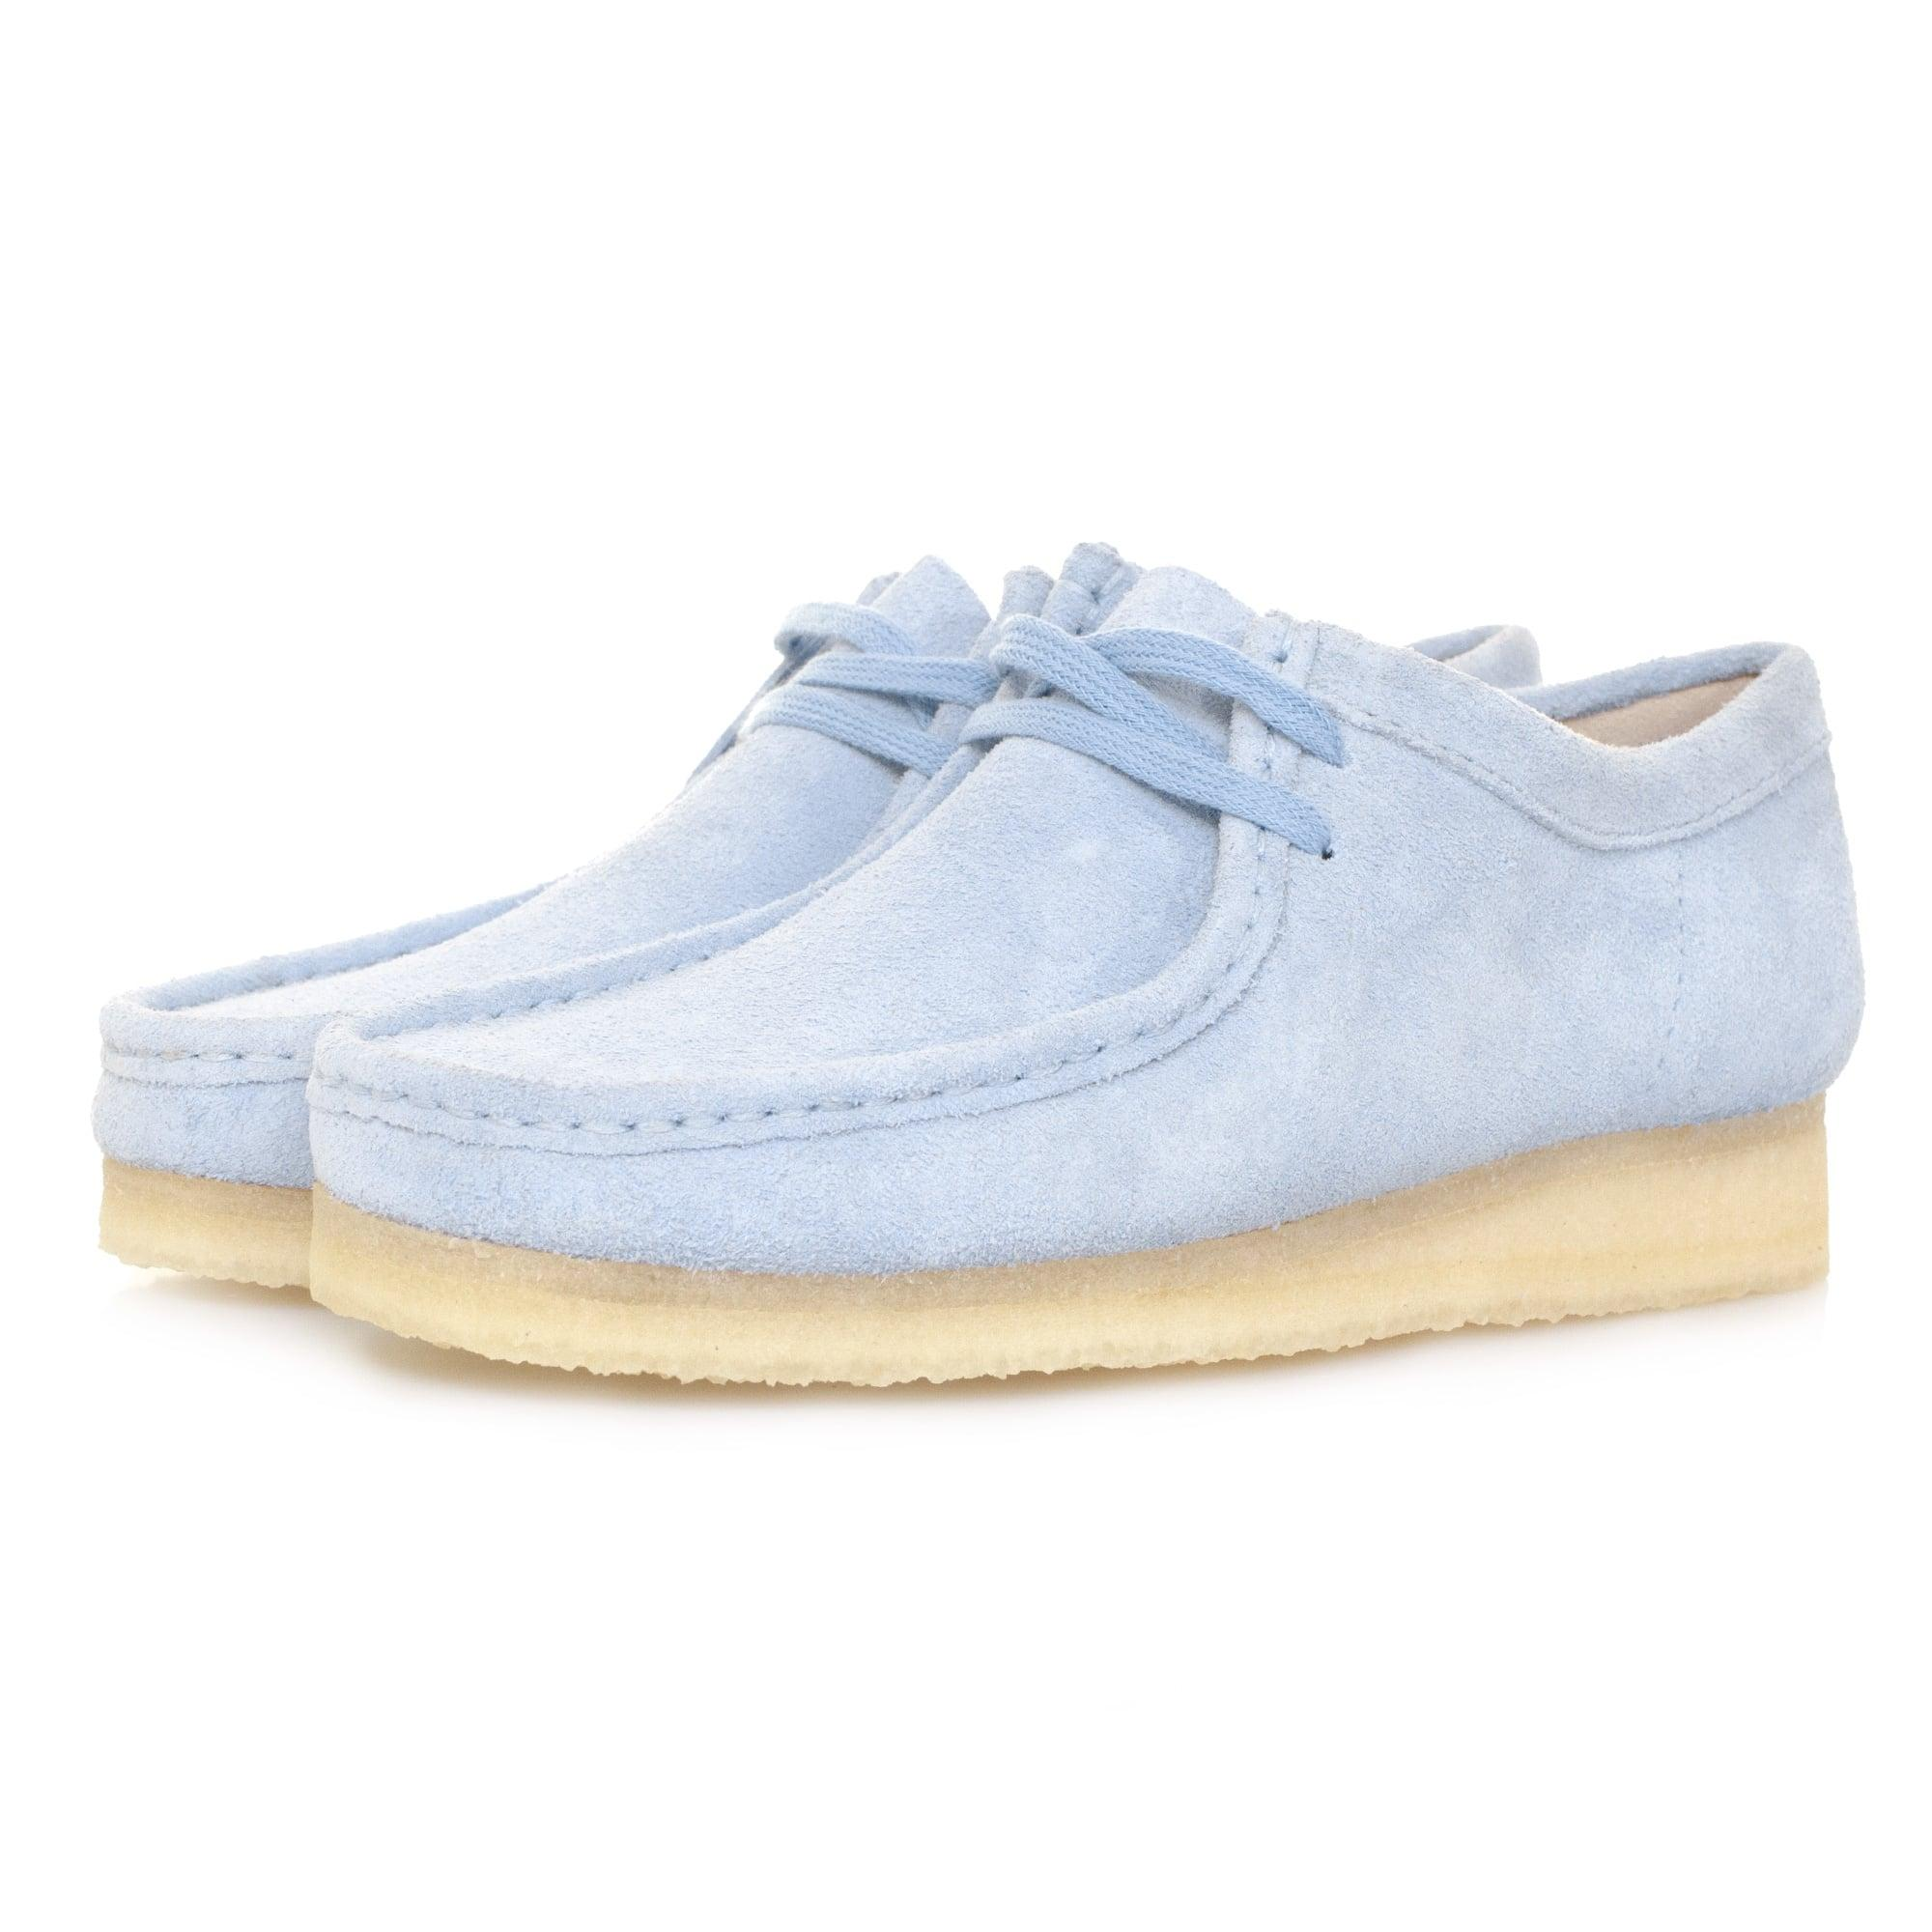 Clarks Womens Suede Lace Up Shoes